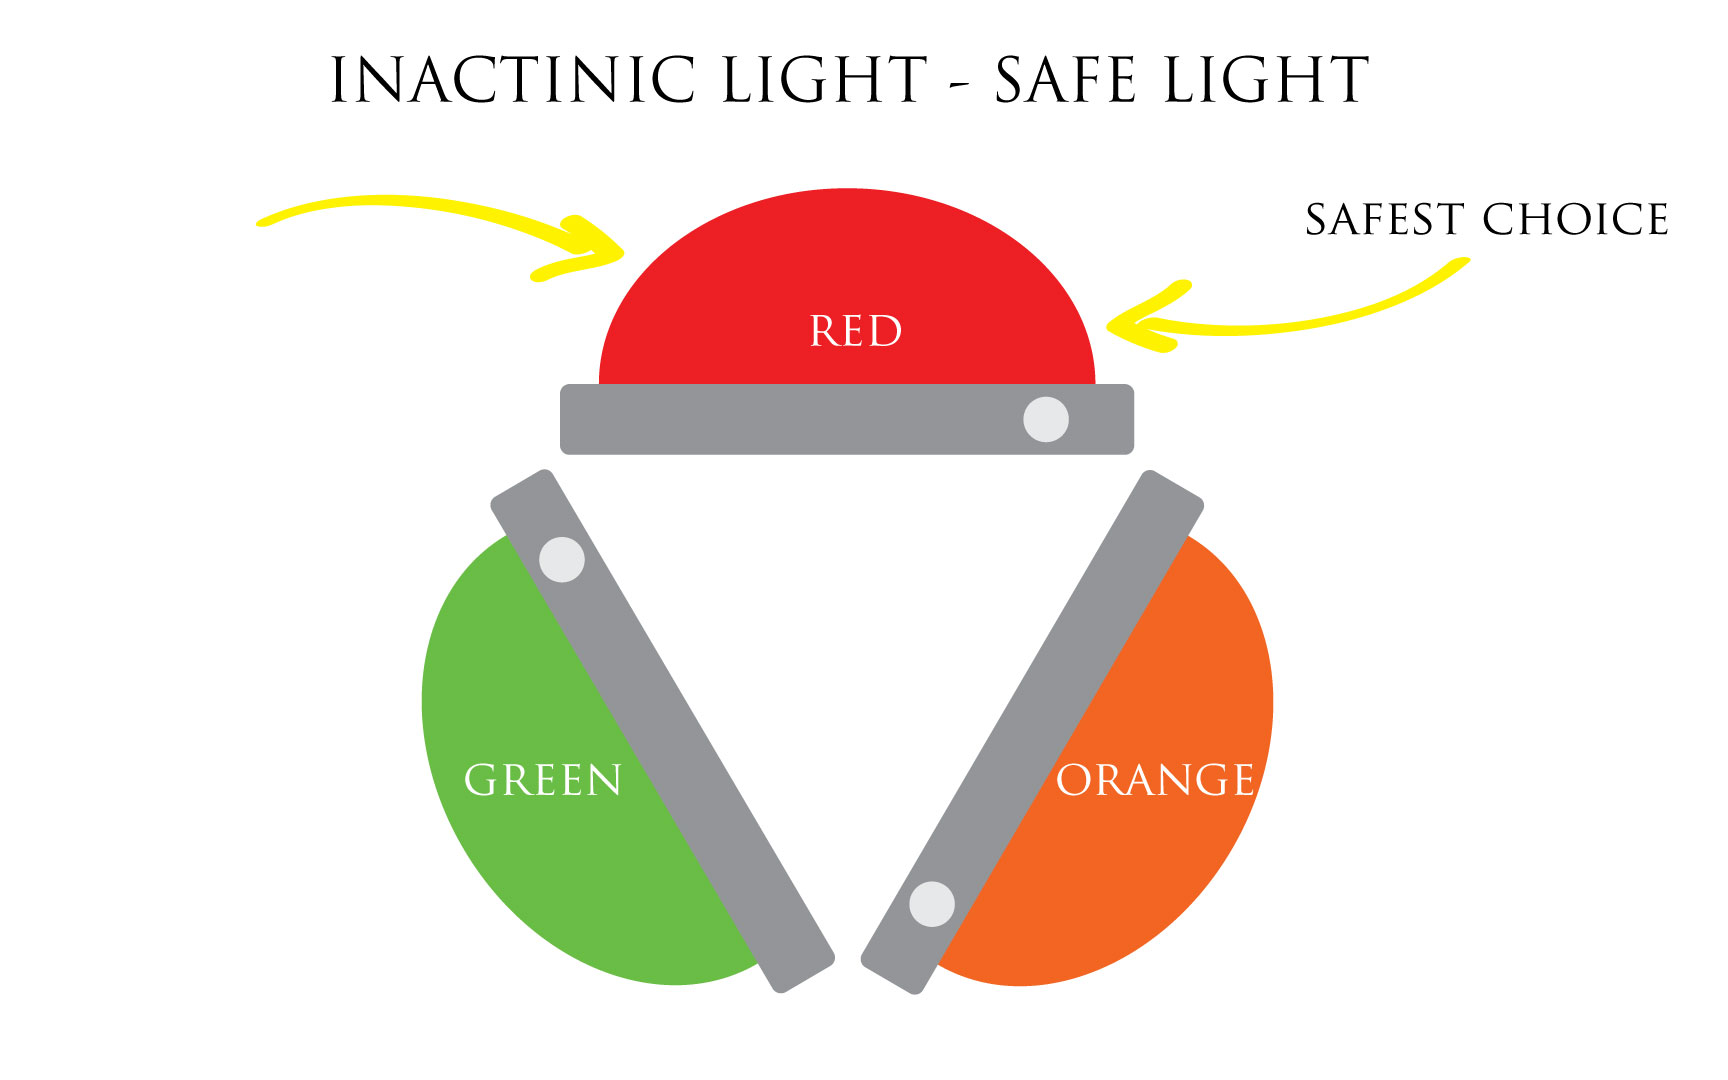 Illustration: Inactinic light, safe light, film photography